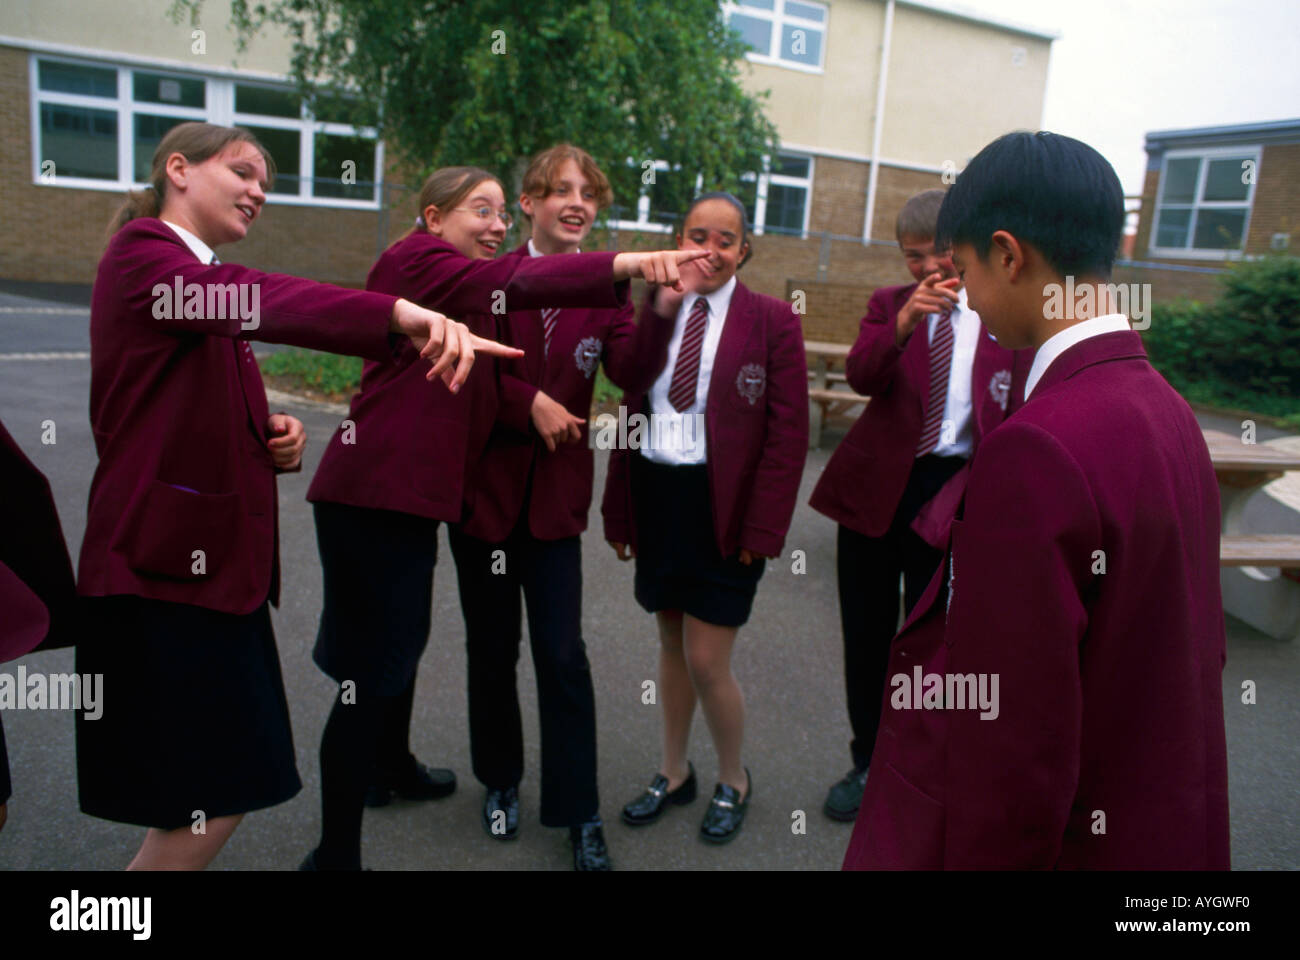 bullying in high school The 2009 wesley report on bullying prepared by an australia-based group, found that pack bullying was more prominent in high schools and characteristically lasted longer than bullying undertaken by individuals.